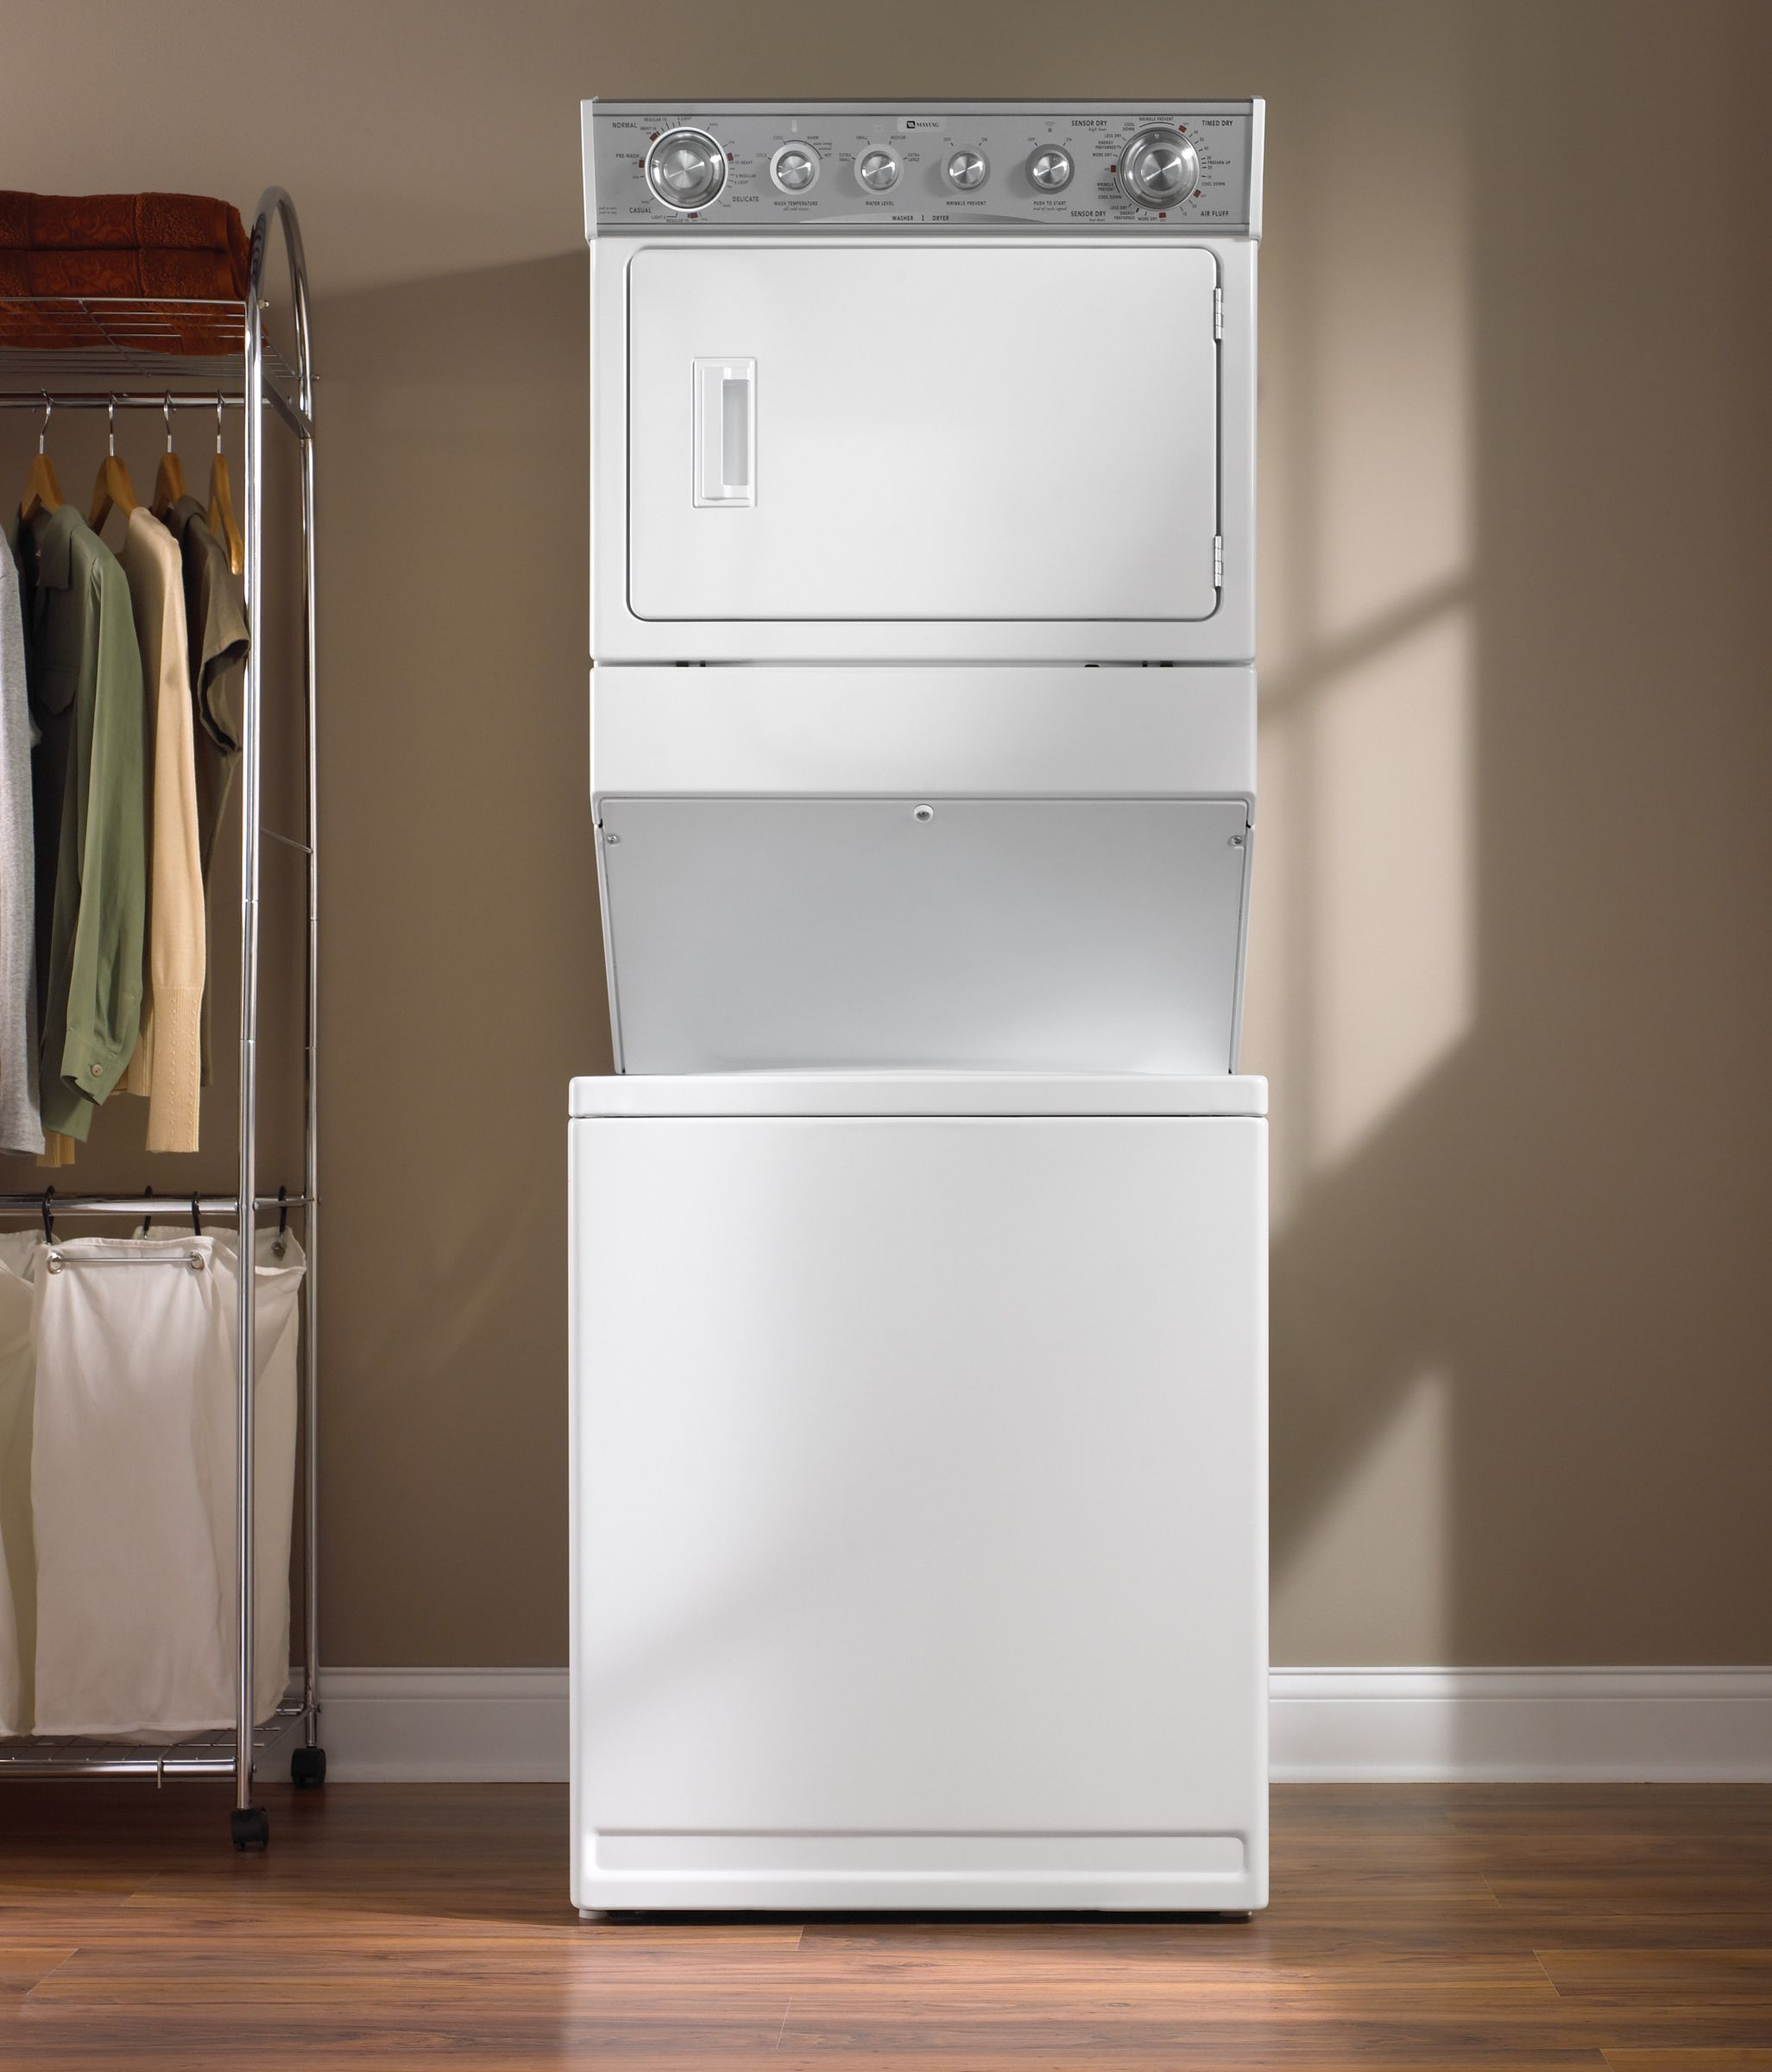 Maytag Super Capacity Electric Laundry Center (MET3800T)